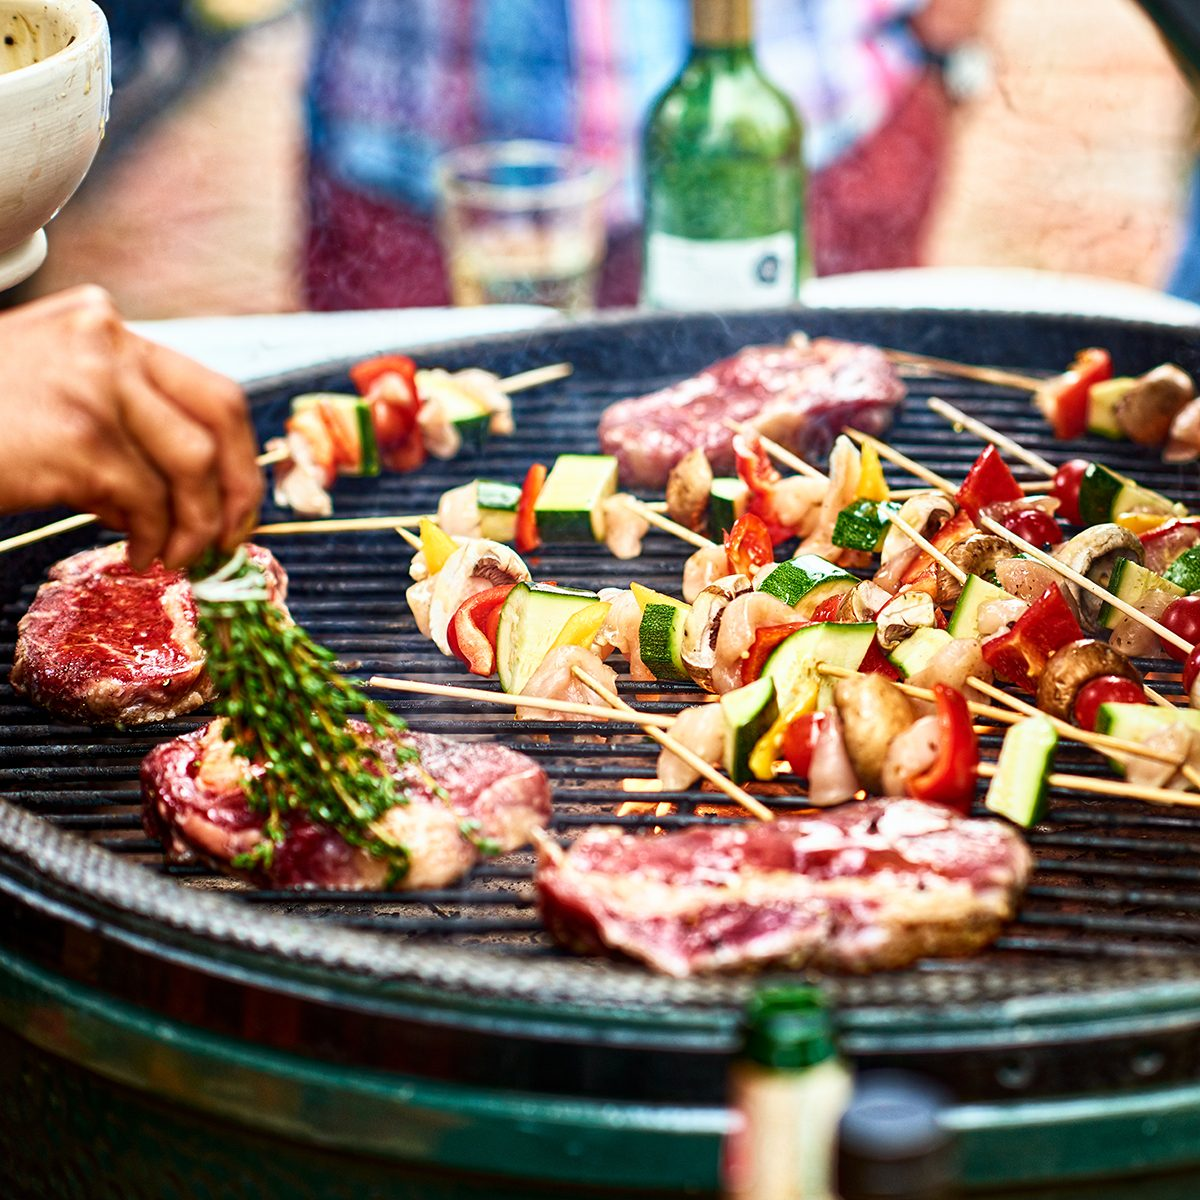 Fresh healthy food grilling on bbq, meat cooking with cubed mediterranean vegetables, sizzling, temptation, party